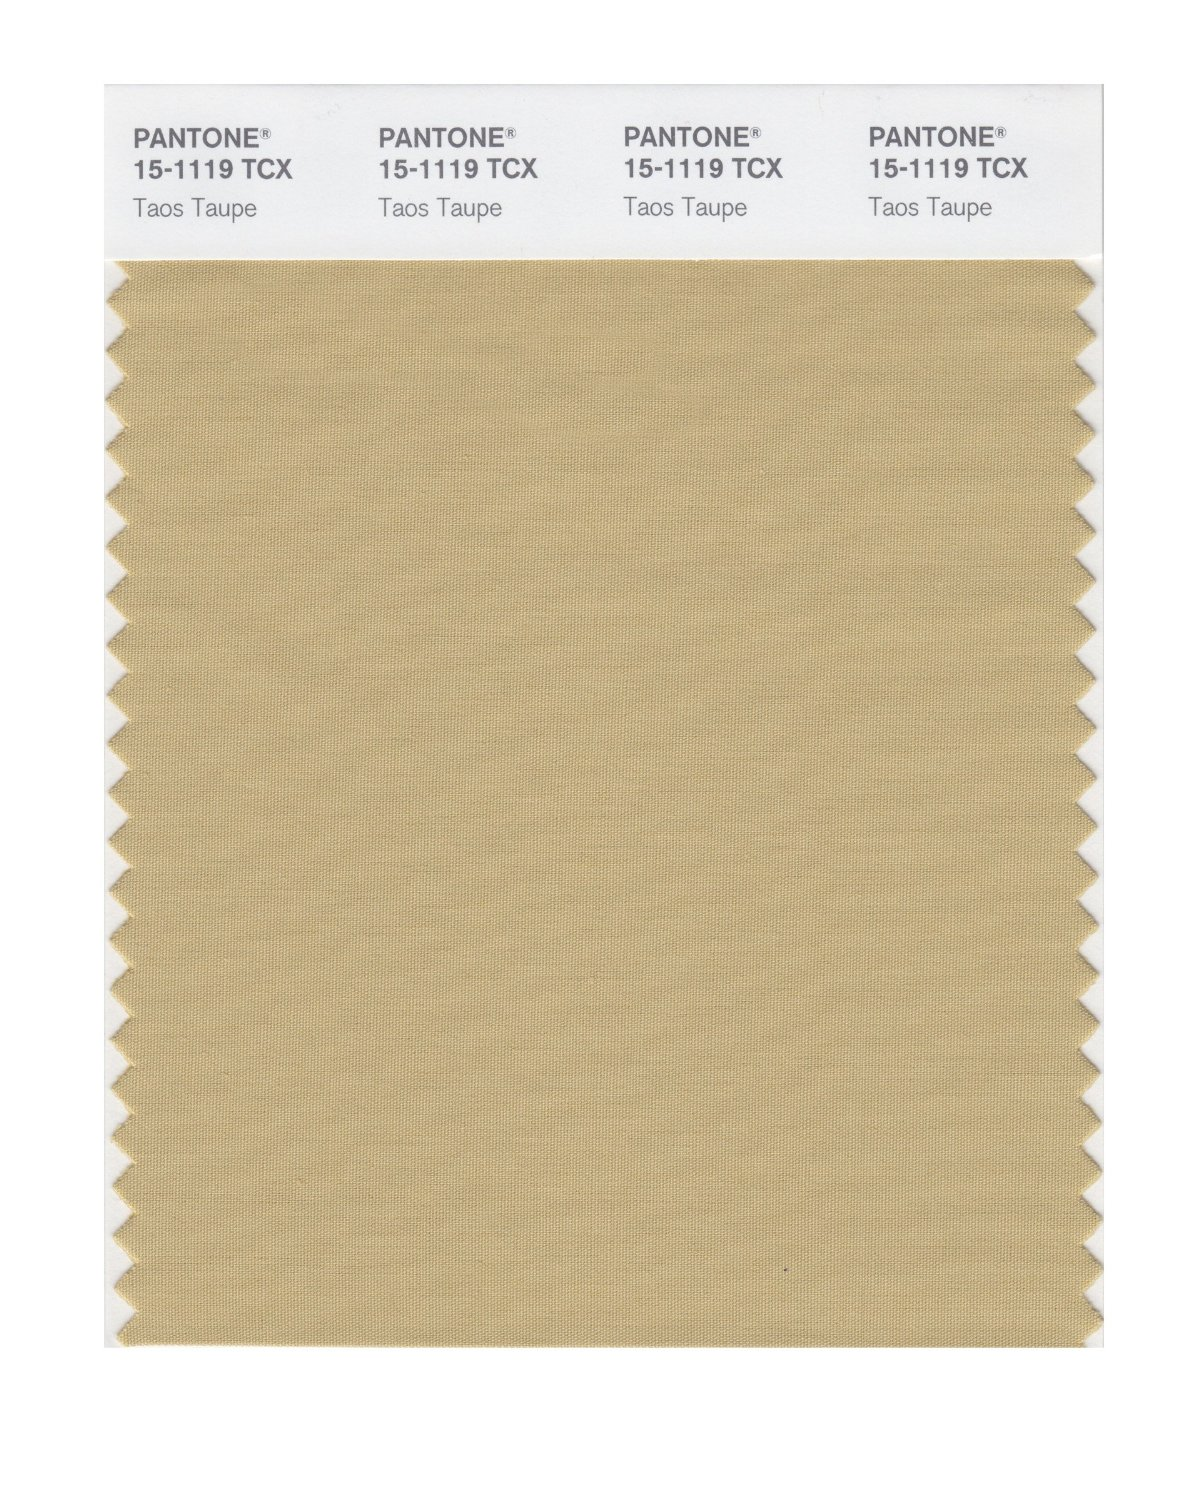 Pantone Smart Swatch 15-1119 Taos Taupe